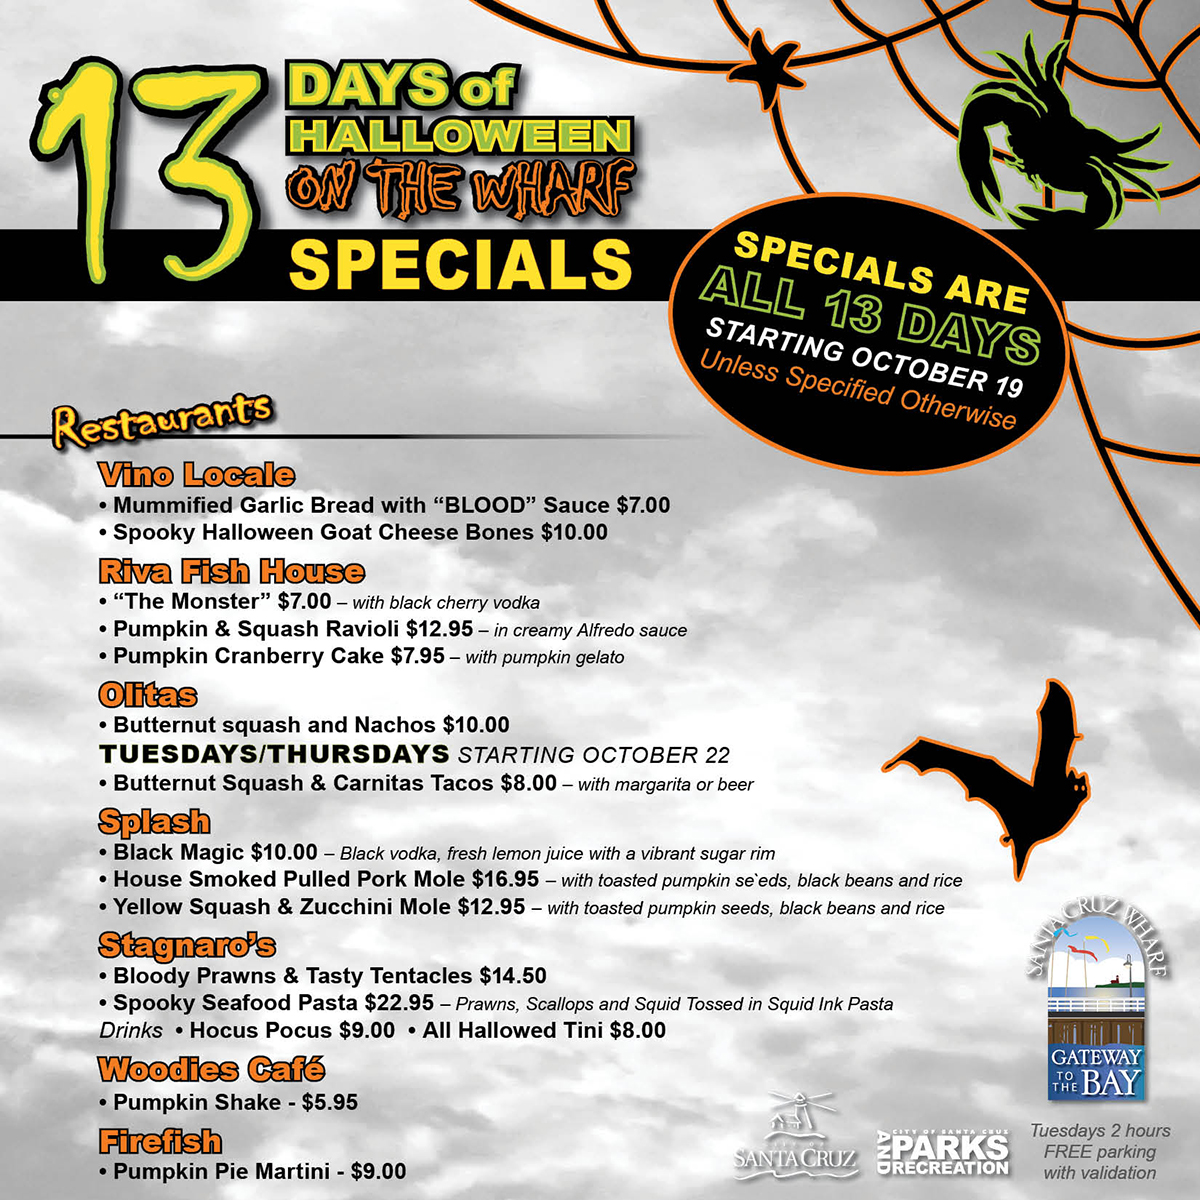 13 Days of Halloween on the Wharf Specials